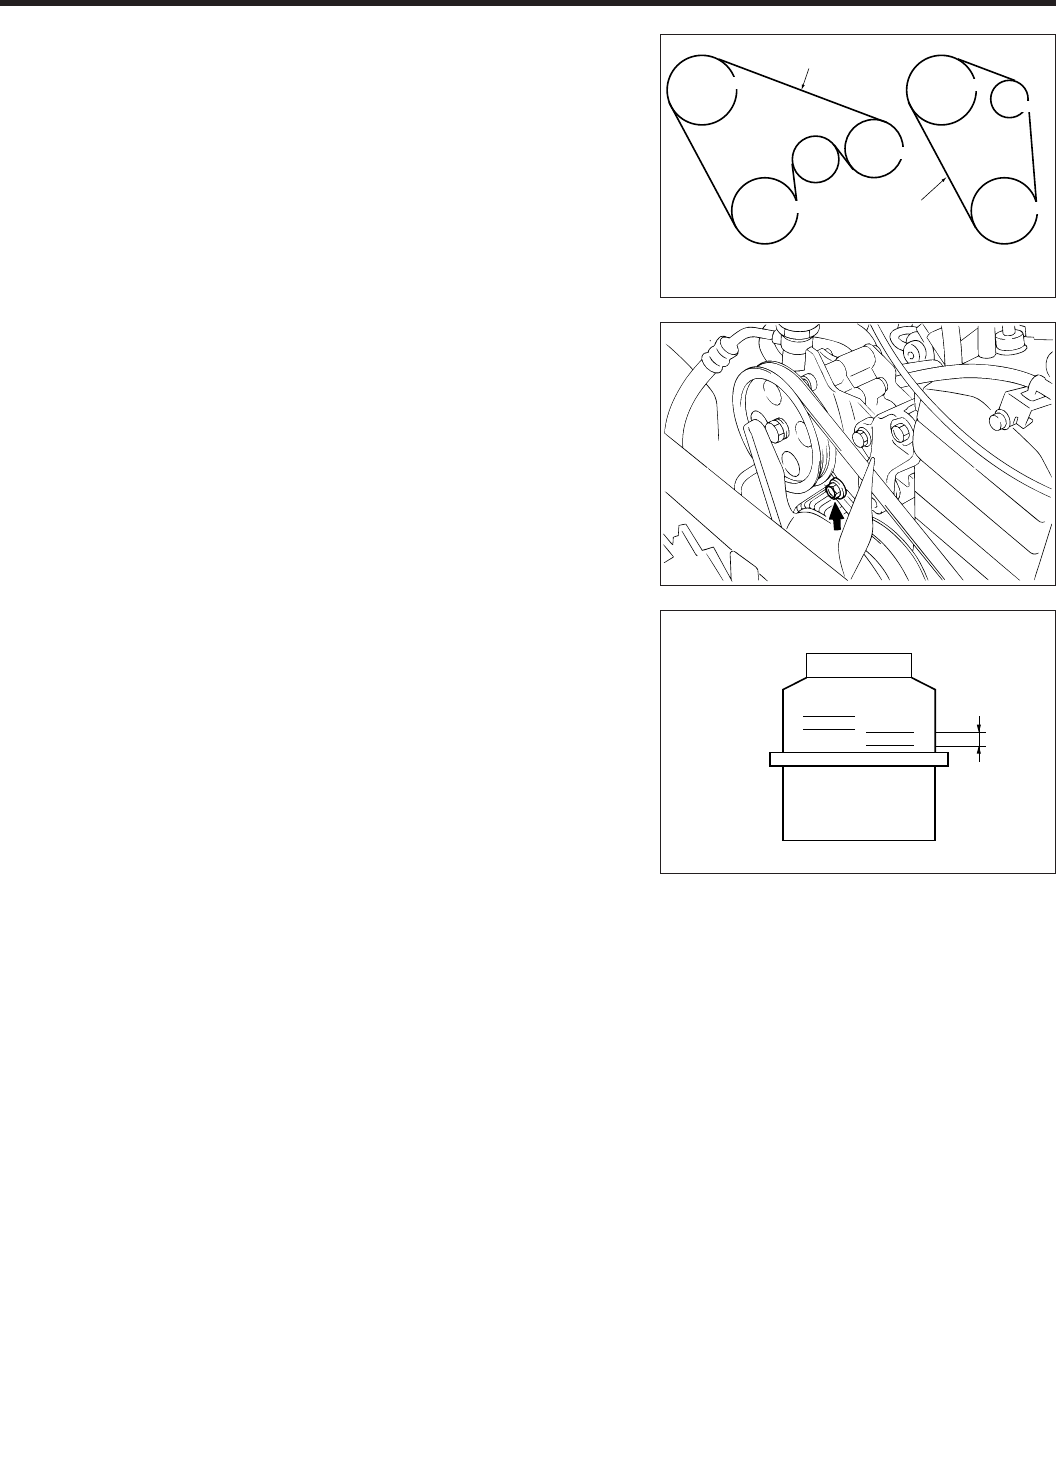 Daihatsu terios workshop manual pdf rh manuals co daihatsu terios 2015 daihatsu terios 2009